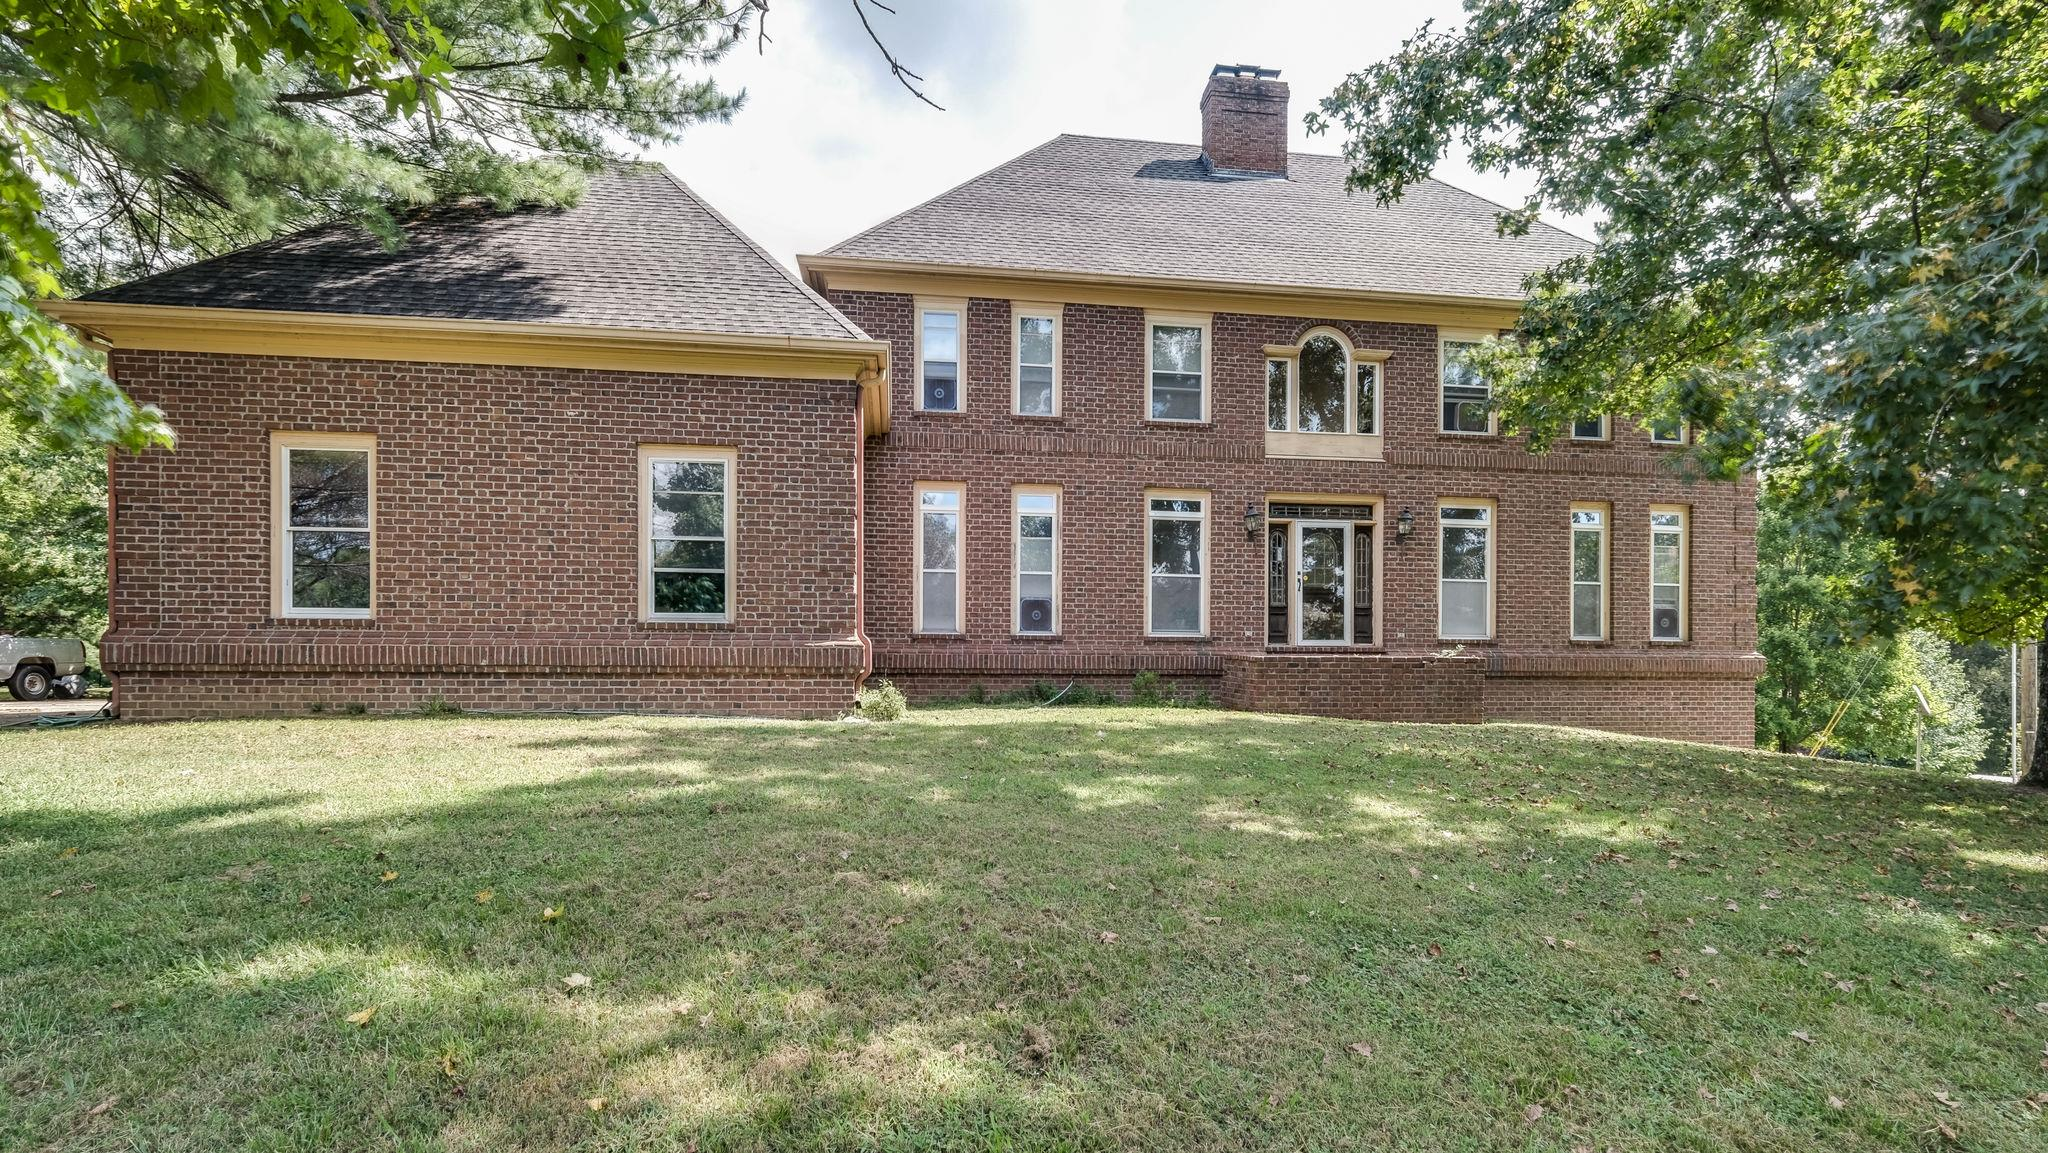 8894 Del Thomas Rd, Smyrna, TN 37167 - Smyrna, TN real estate listing